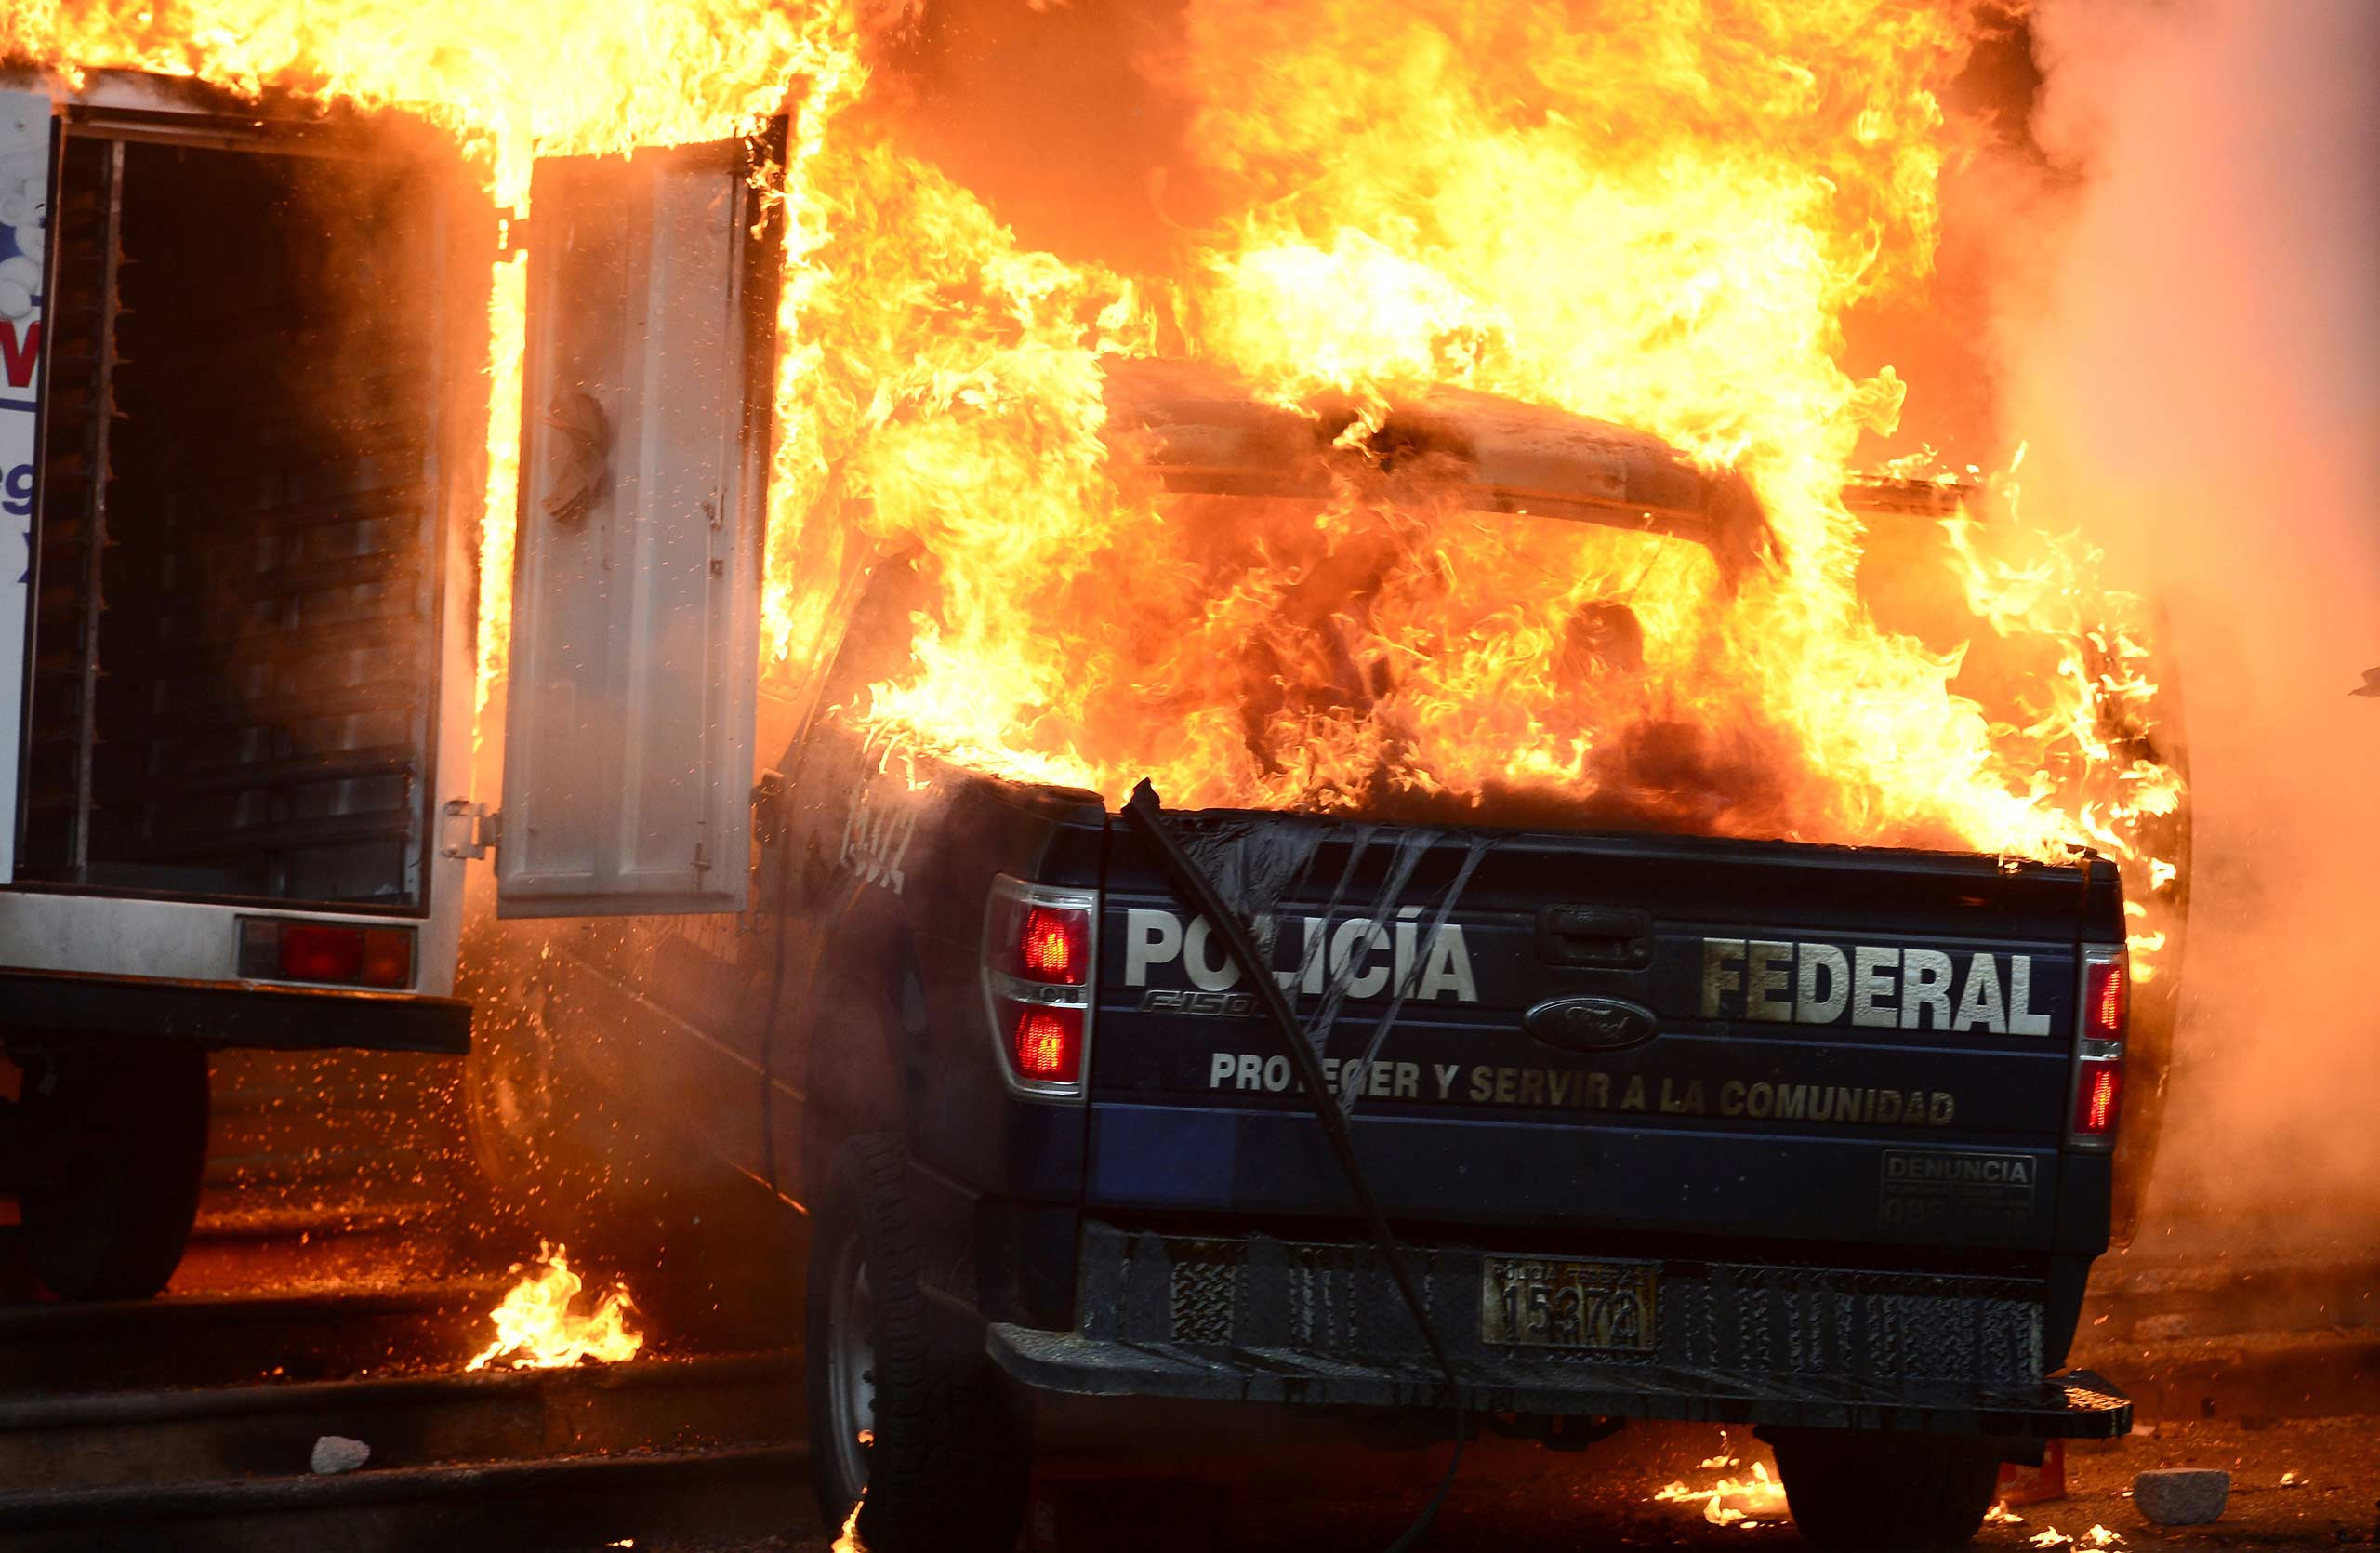 Burning cars are seen during a protest outside the State Government headquarters in Chilpancingo, Mexico on November 8, 2014.